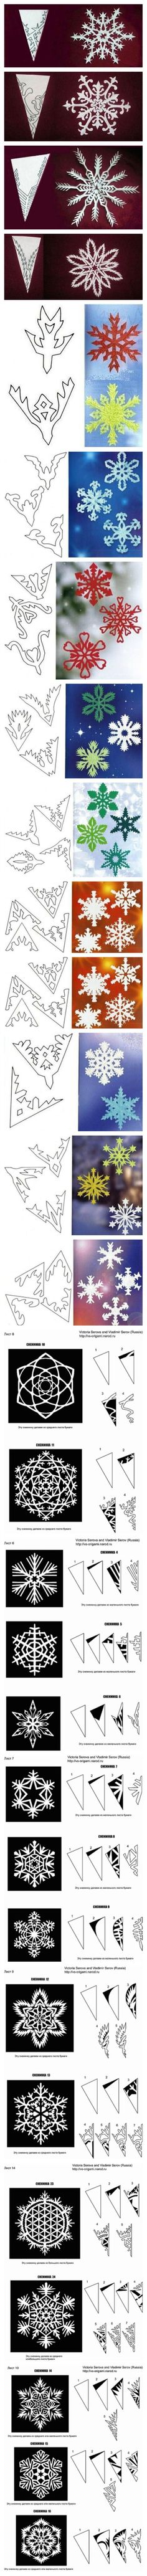 How to Make Paper Snowflakes #holiday #christmas #winter #crafts #decoration